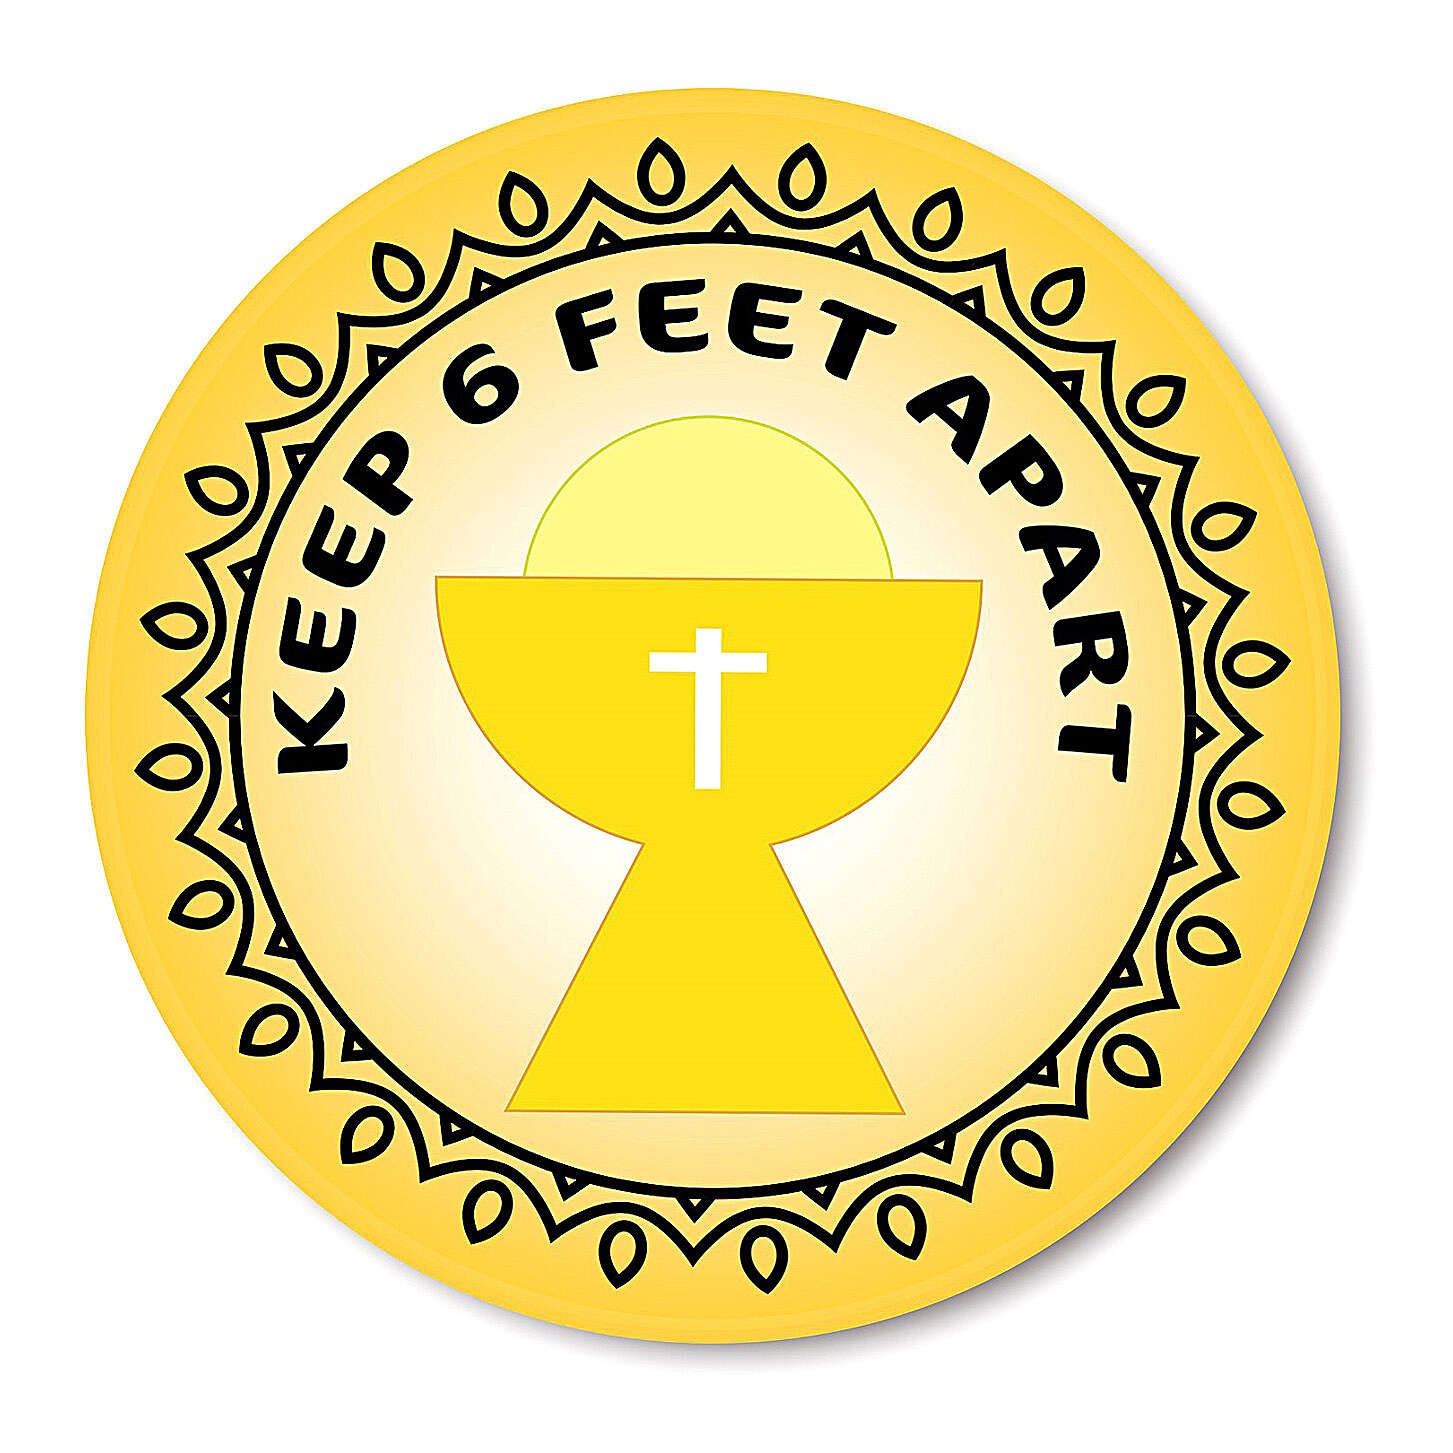 KEEP 6 FEET APART CHALICE removable stickers 6 pcs 3